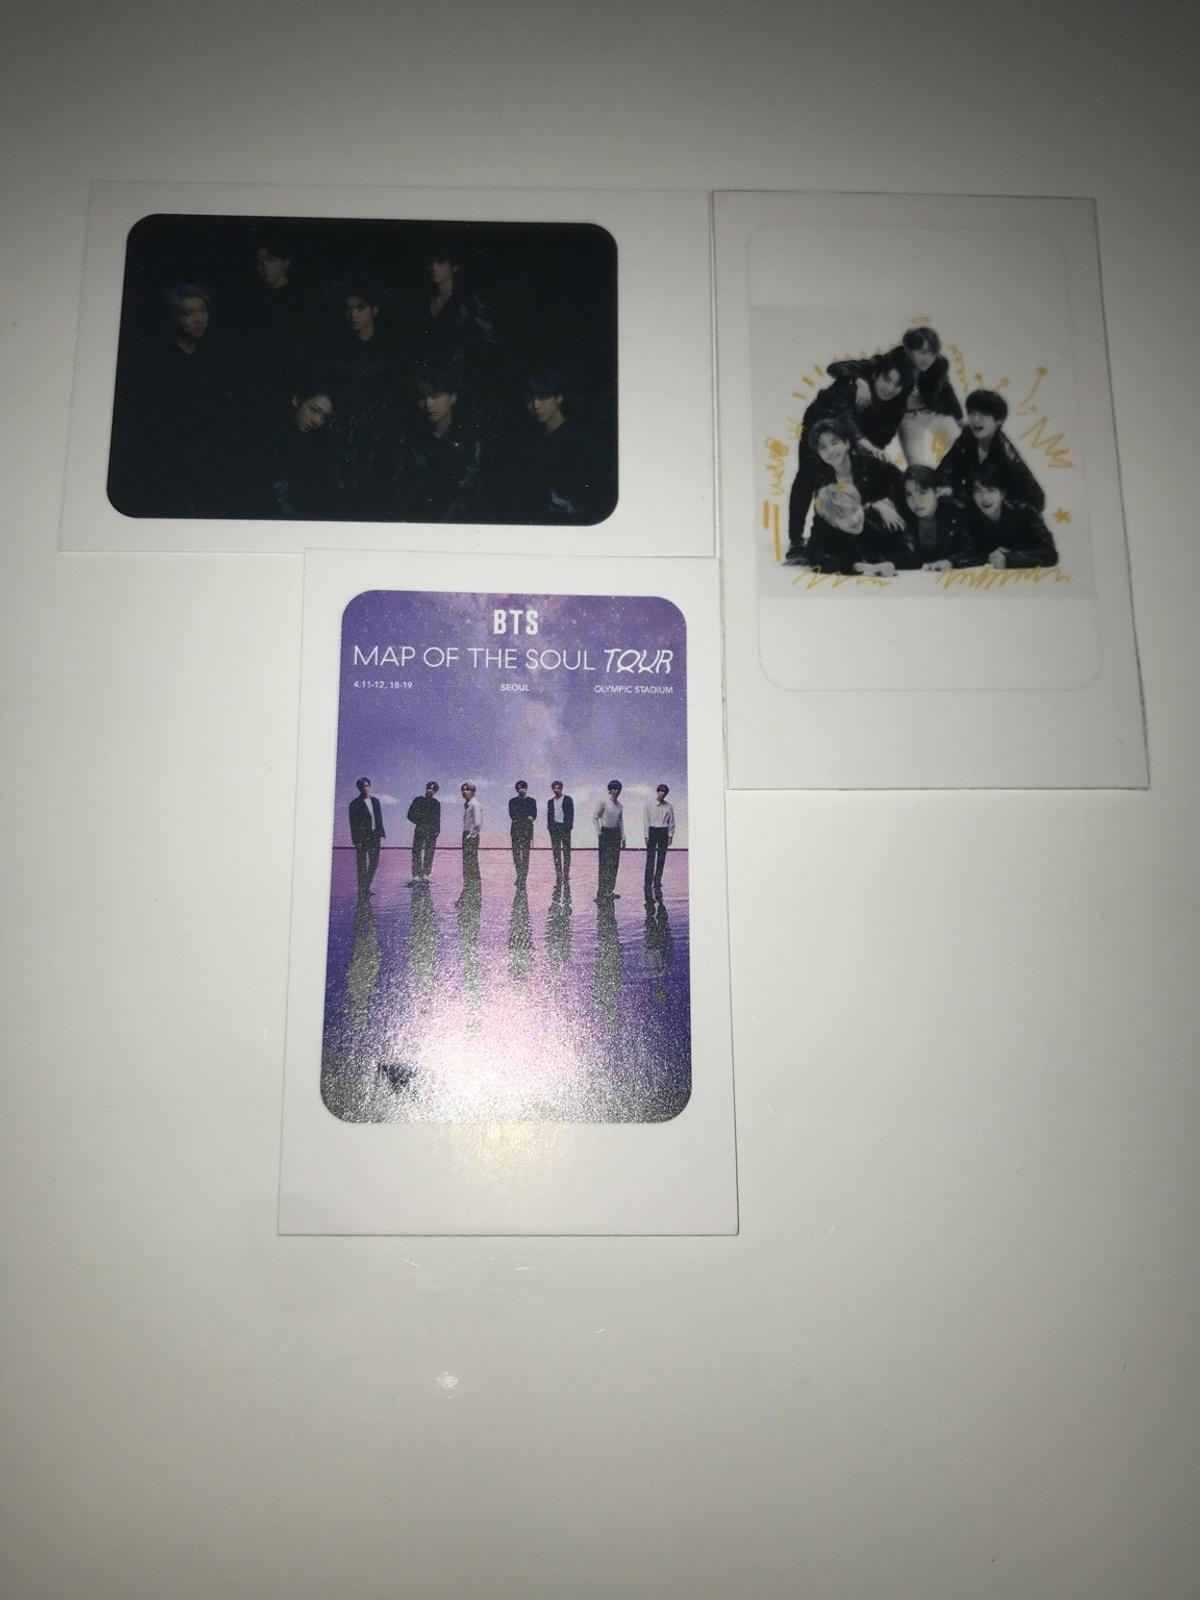 Bts Unofficial Merch In 8042 Graz For 2 00 For Sale Shpock